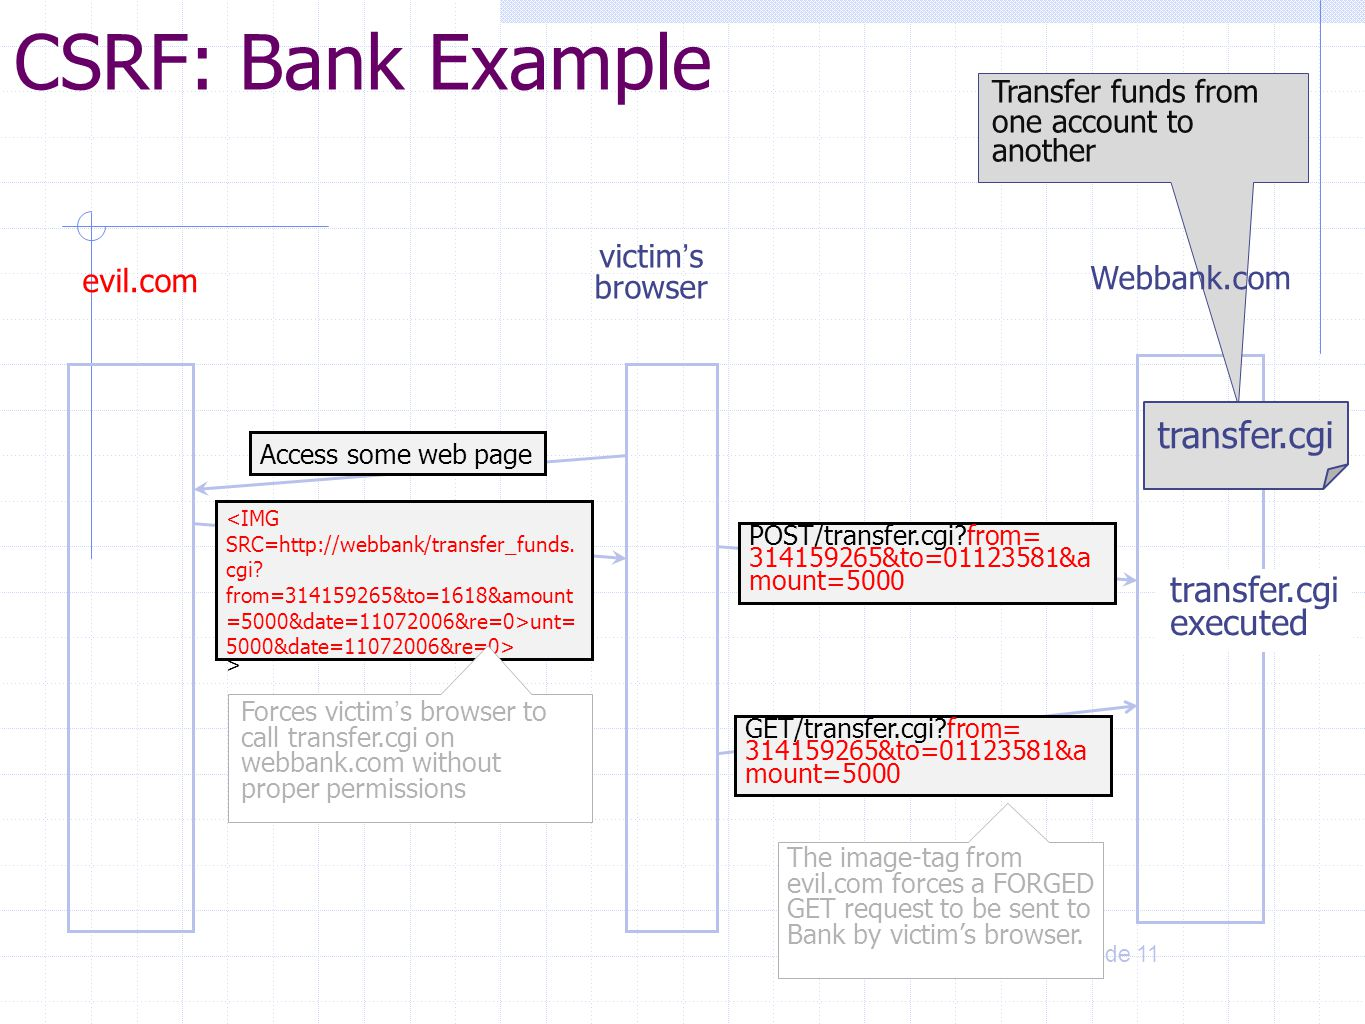 CSRF: Bank Example transfer.cgi transfer.cgi executed victim's browser